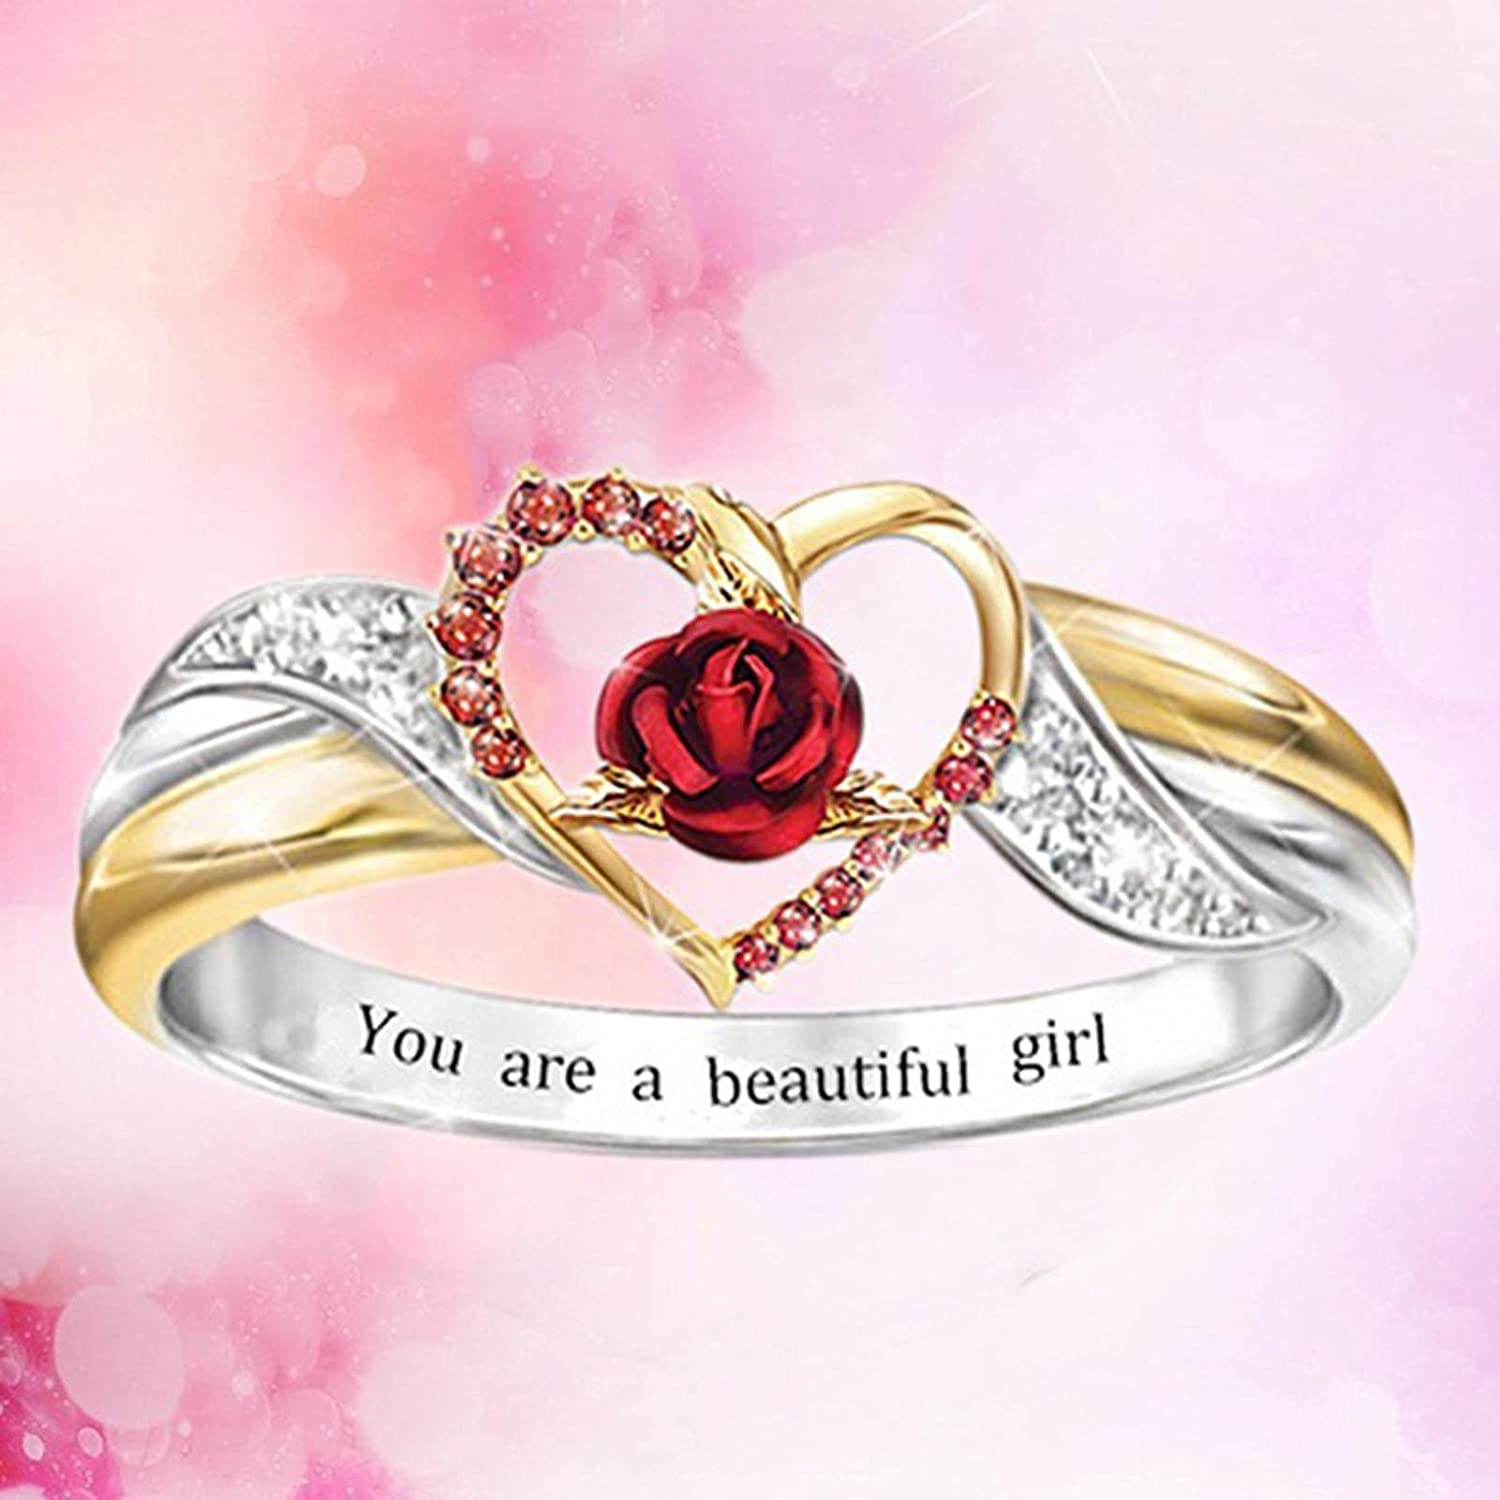 Rubyyouhe8 Stacking Rings for Women Women Ring Beautiful Nice-Looking Portable Women Exquisite Love Heart Rose Ring for Wedding Comfort Rings Hypoallergenic